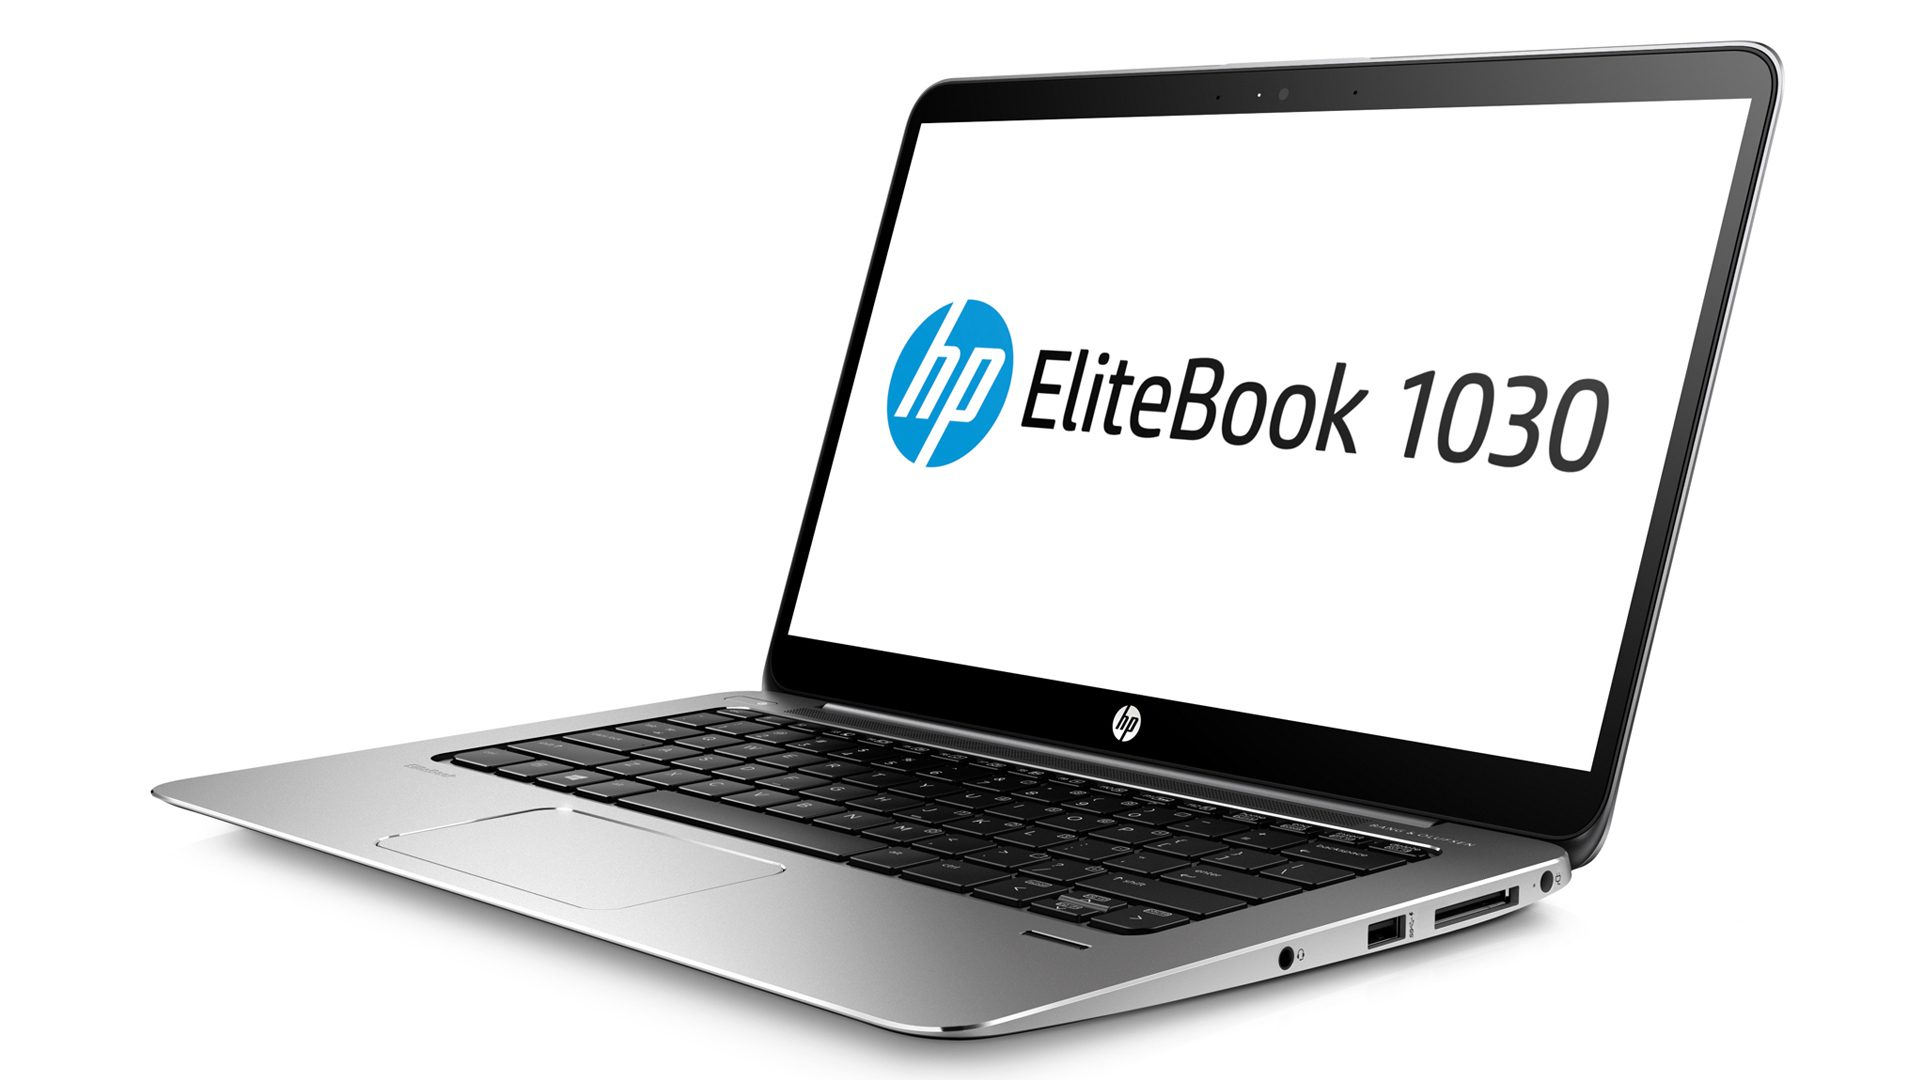 HP-Elitebook-1030-G1-X2F03EA-Ansichten_3